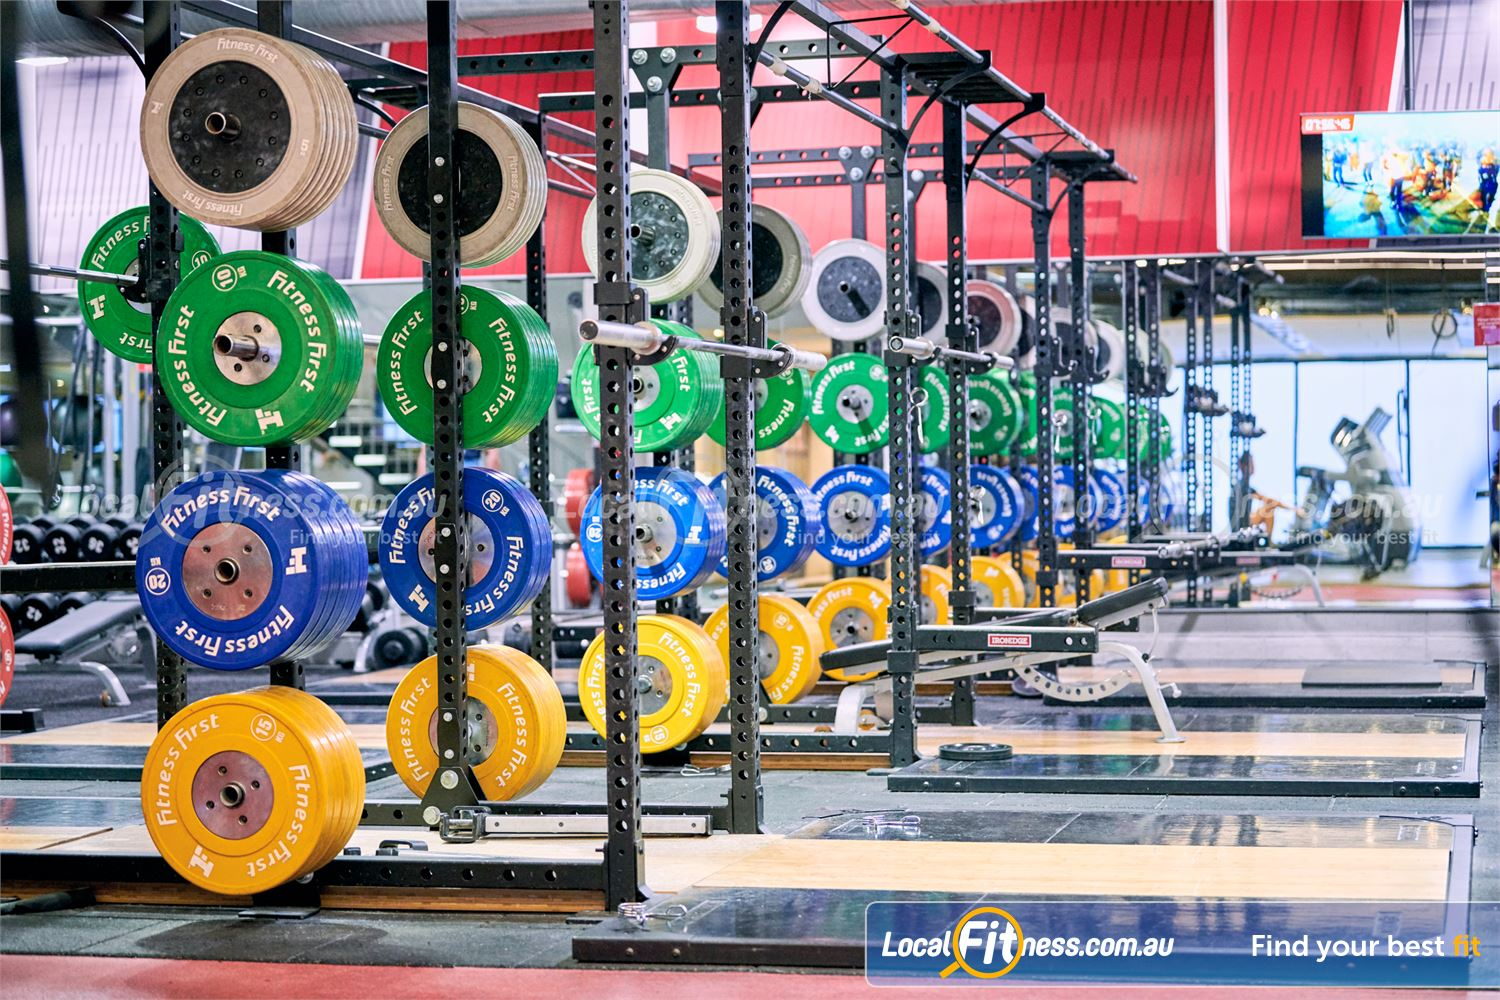 Fitness First Erina Fair Erina Our Erina Fair gym is fully equipped for strength, freestyle and cardio training.